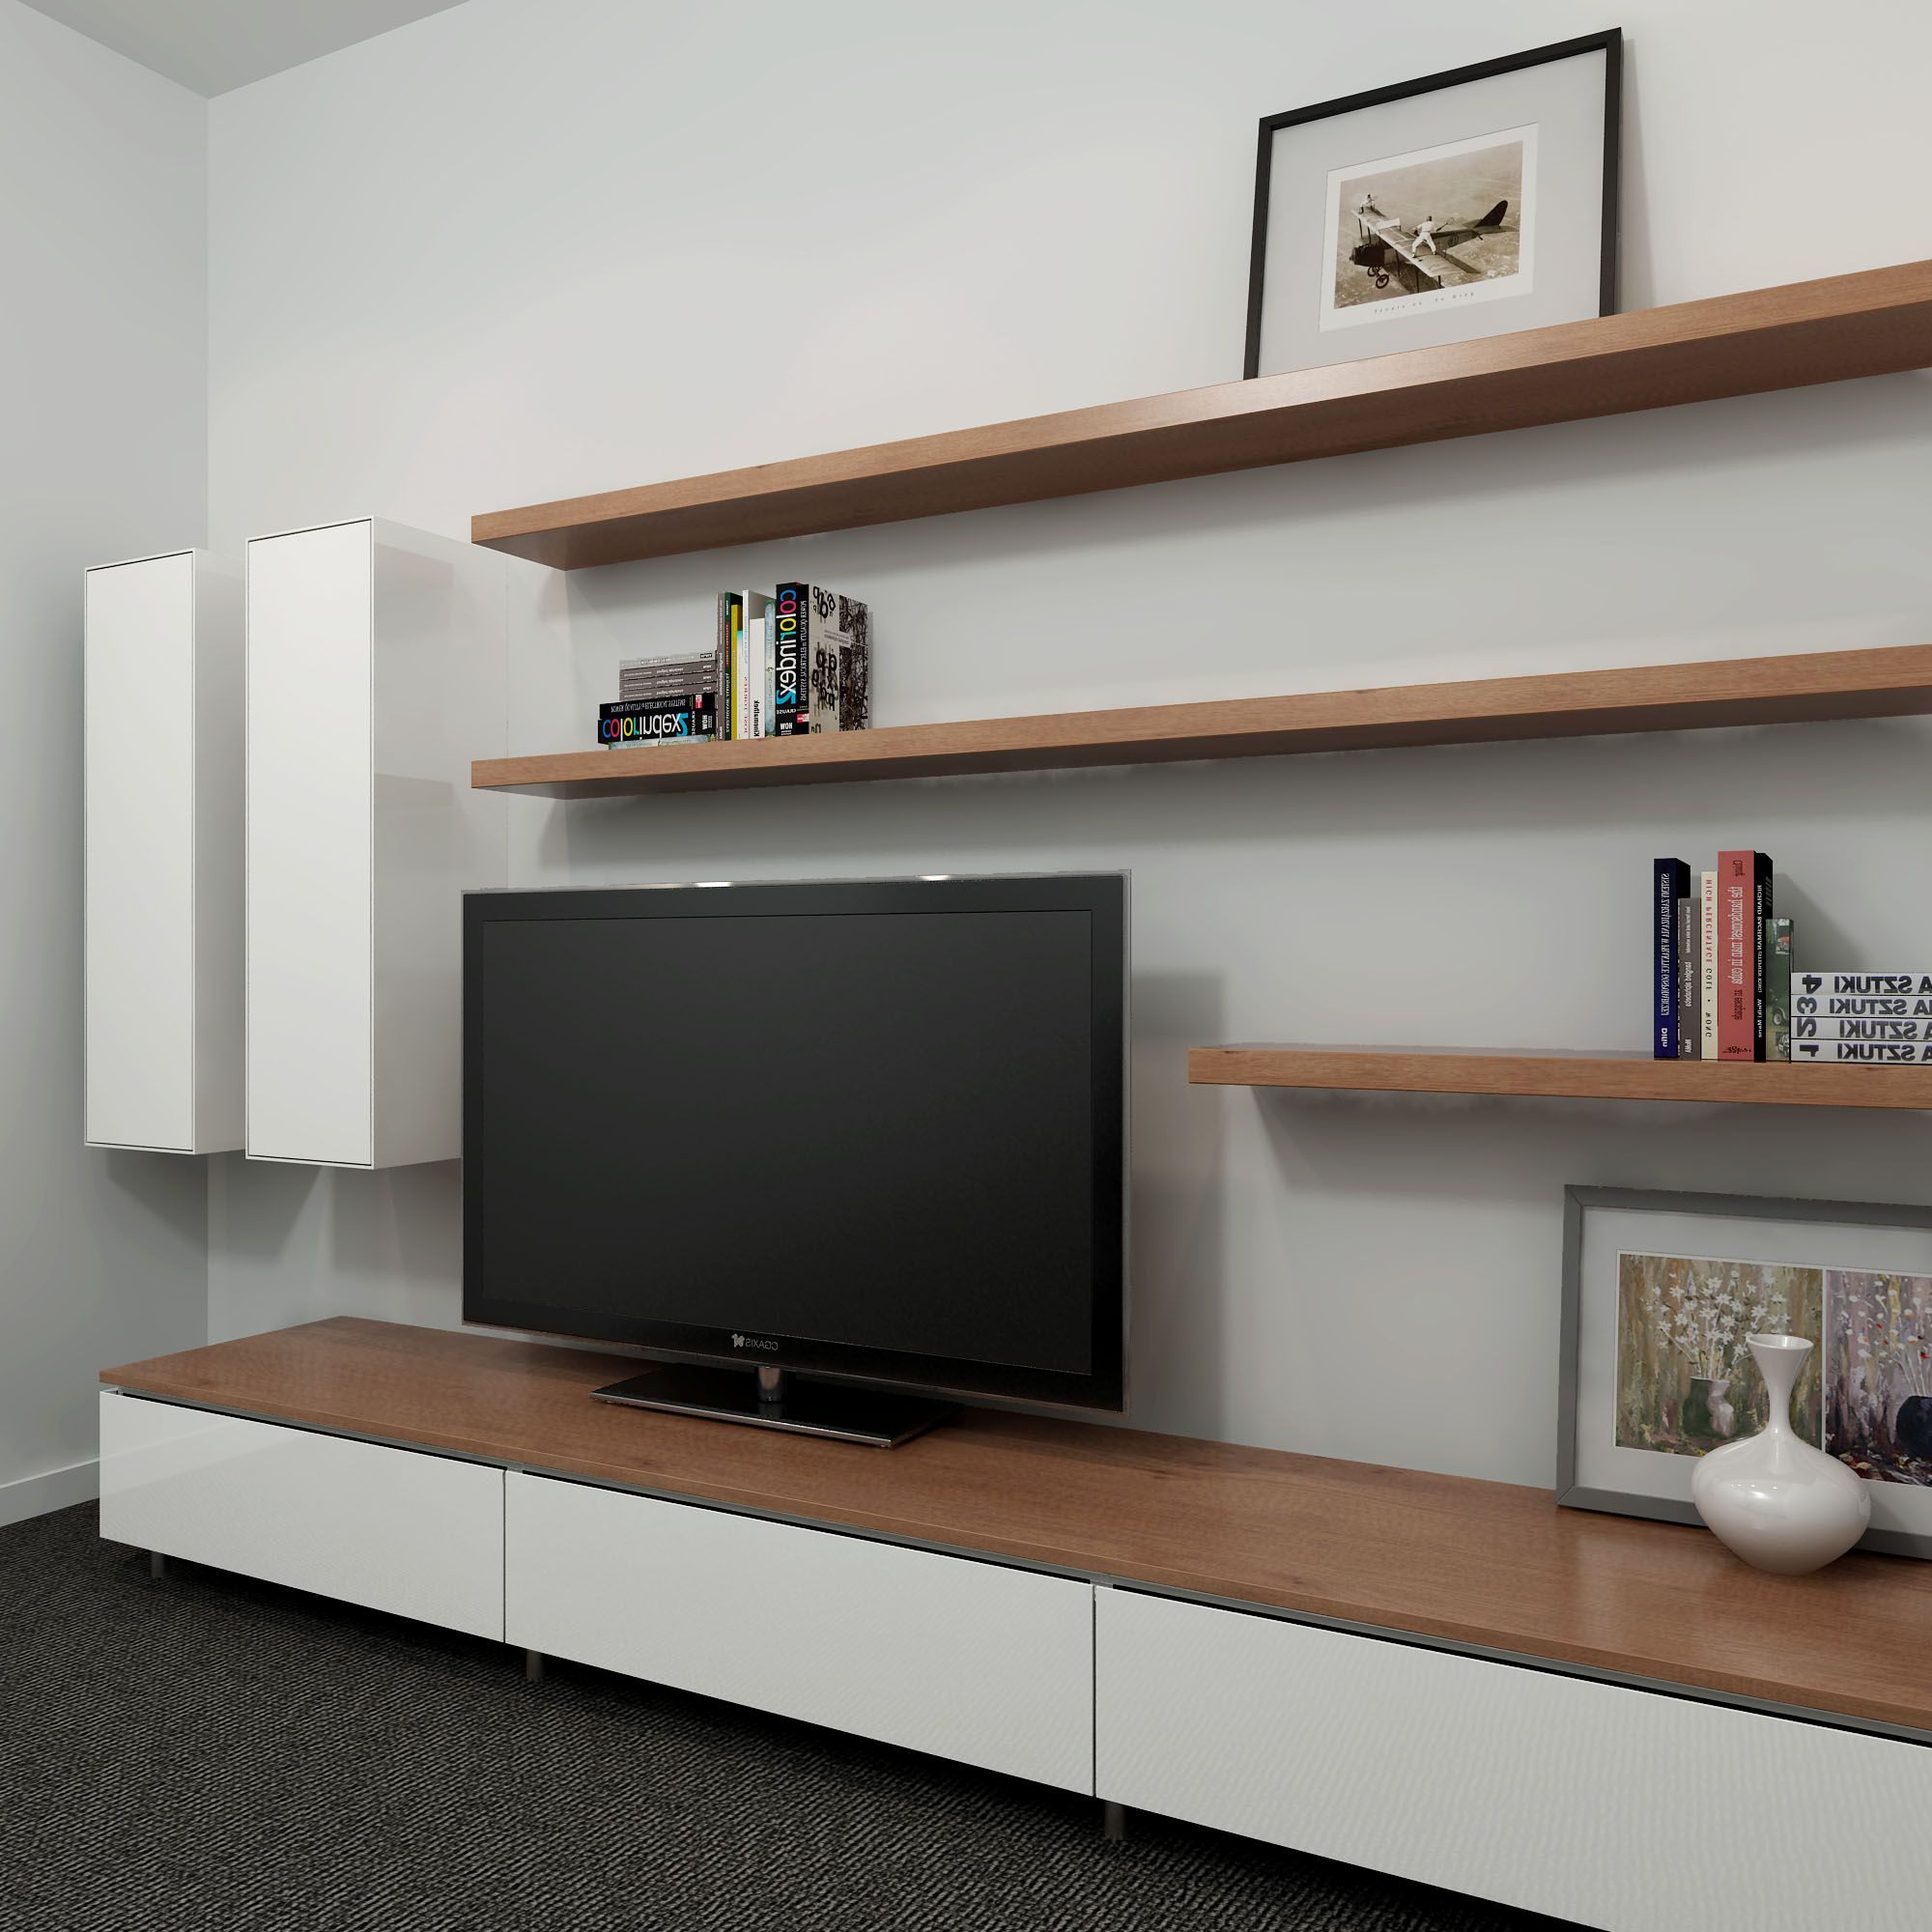 Cool Tv Stands Pertaining To Most Current 19 Amazing Diy Tv Stand Ideas You Can Build Right Now (View 11 of 20)